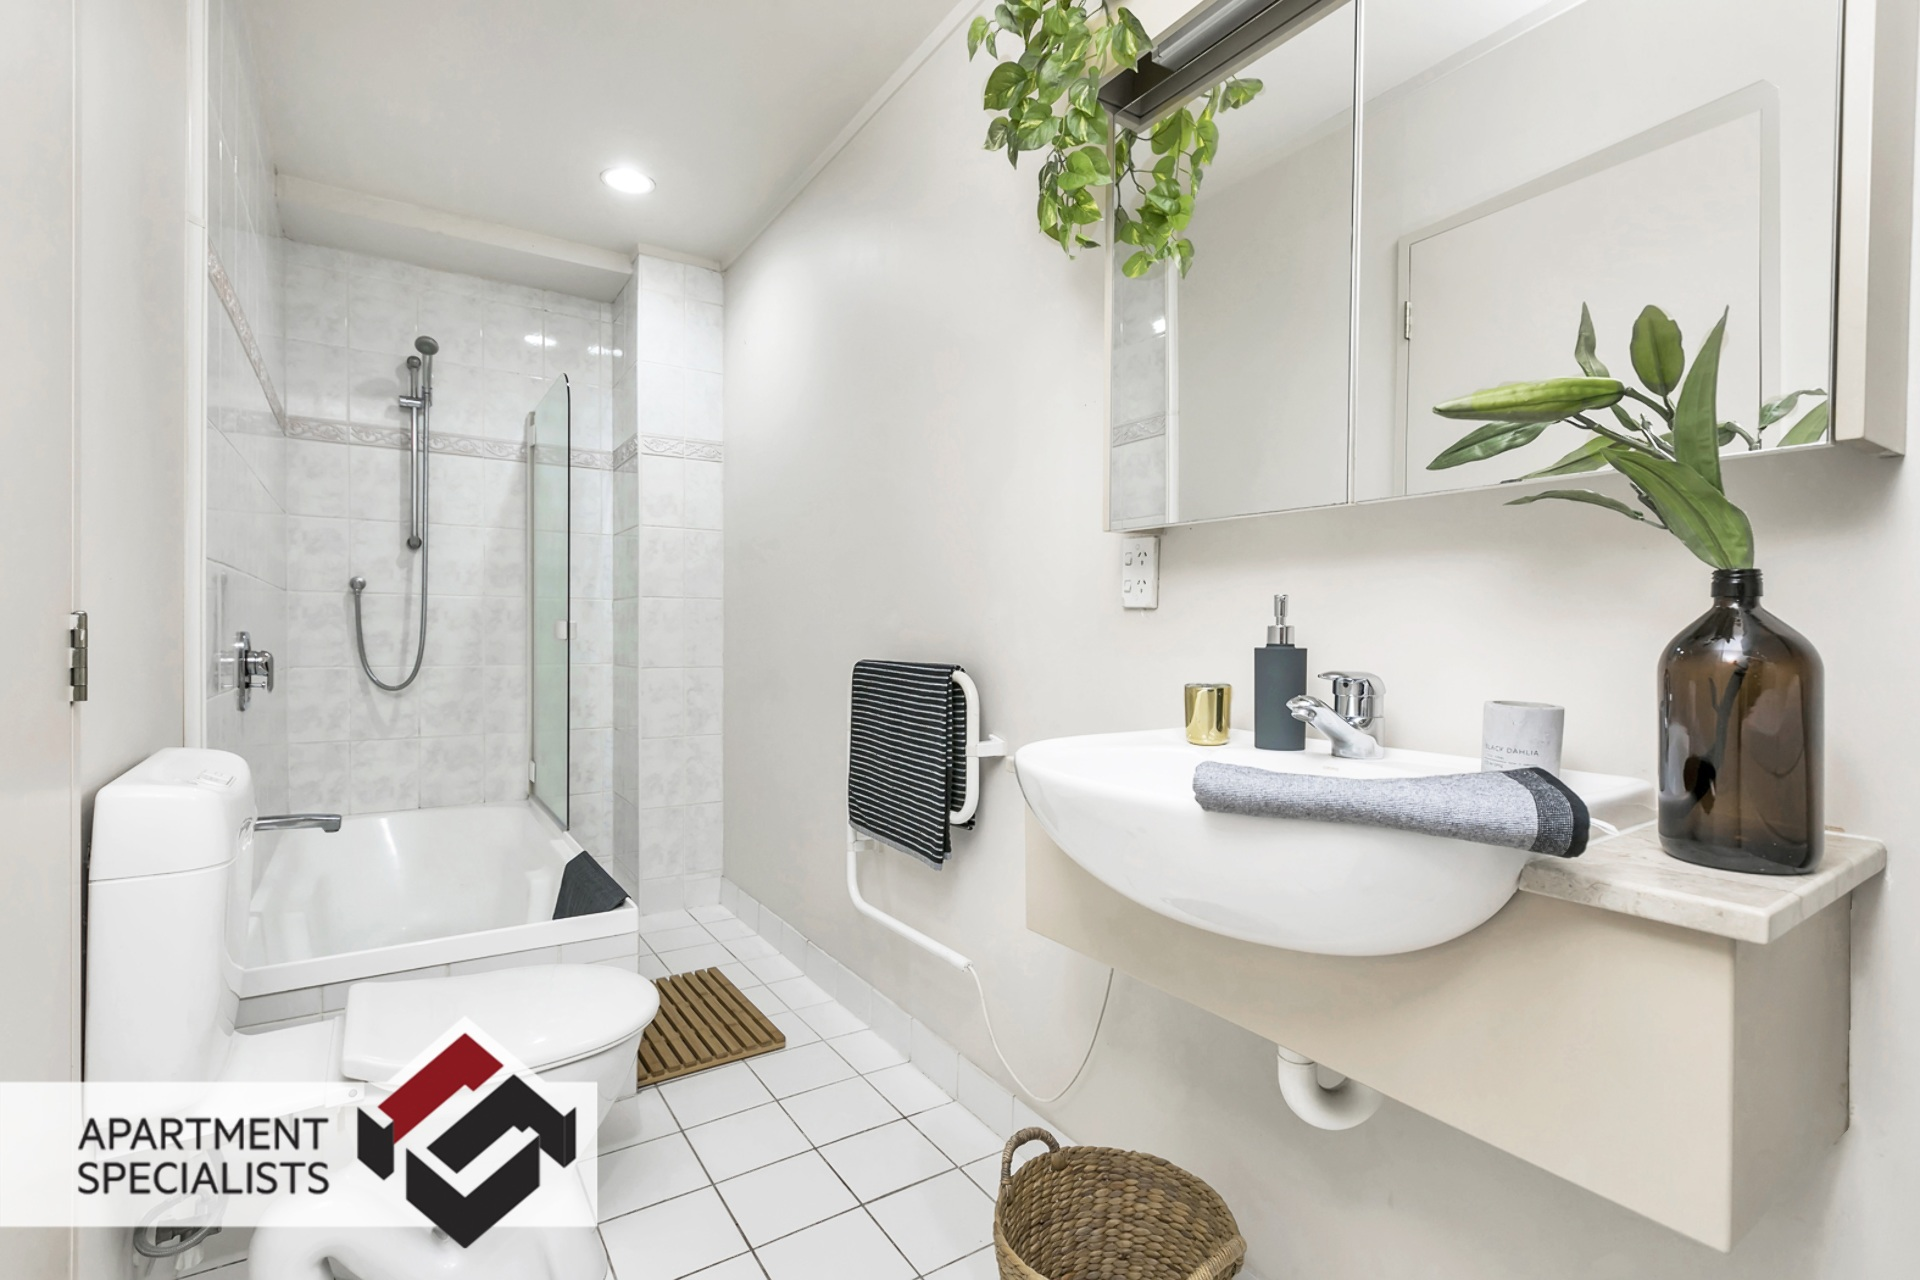 7 | 89 Victoria Street West, City Centre | Apartment Specialists